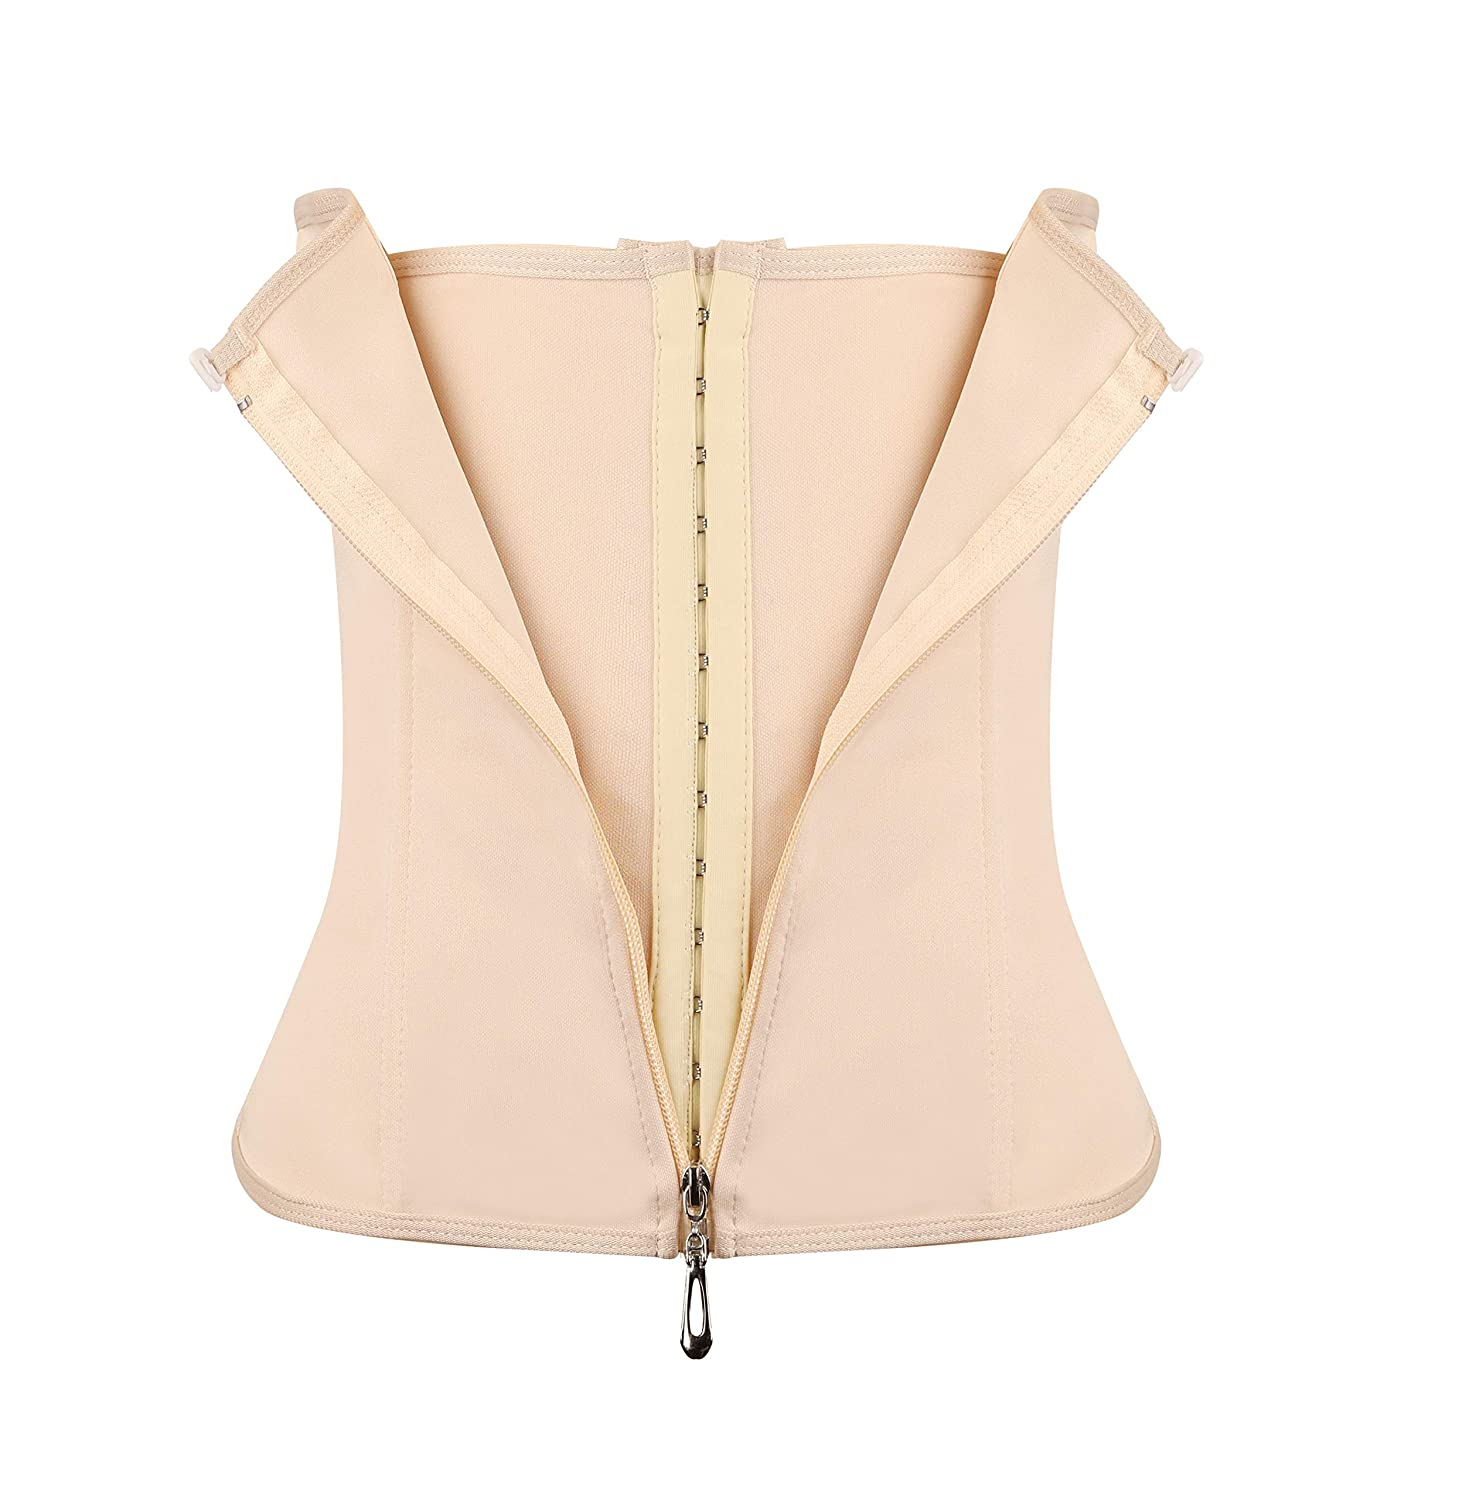 Akivide Women Waist Trainer Corset for Weight Loss Tummy Control Sport Workout Body Shaper